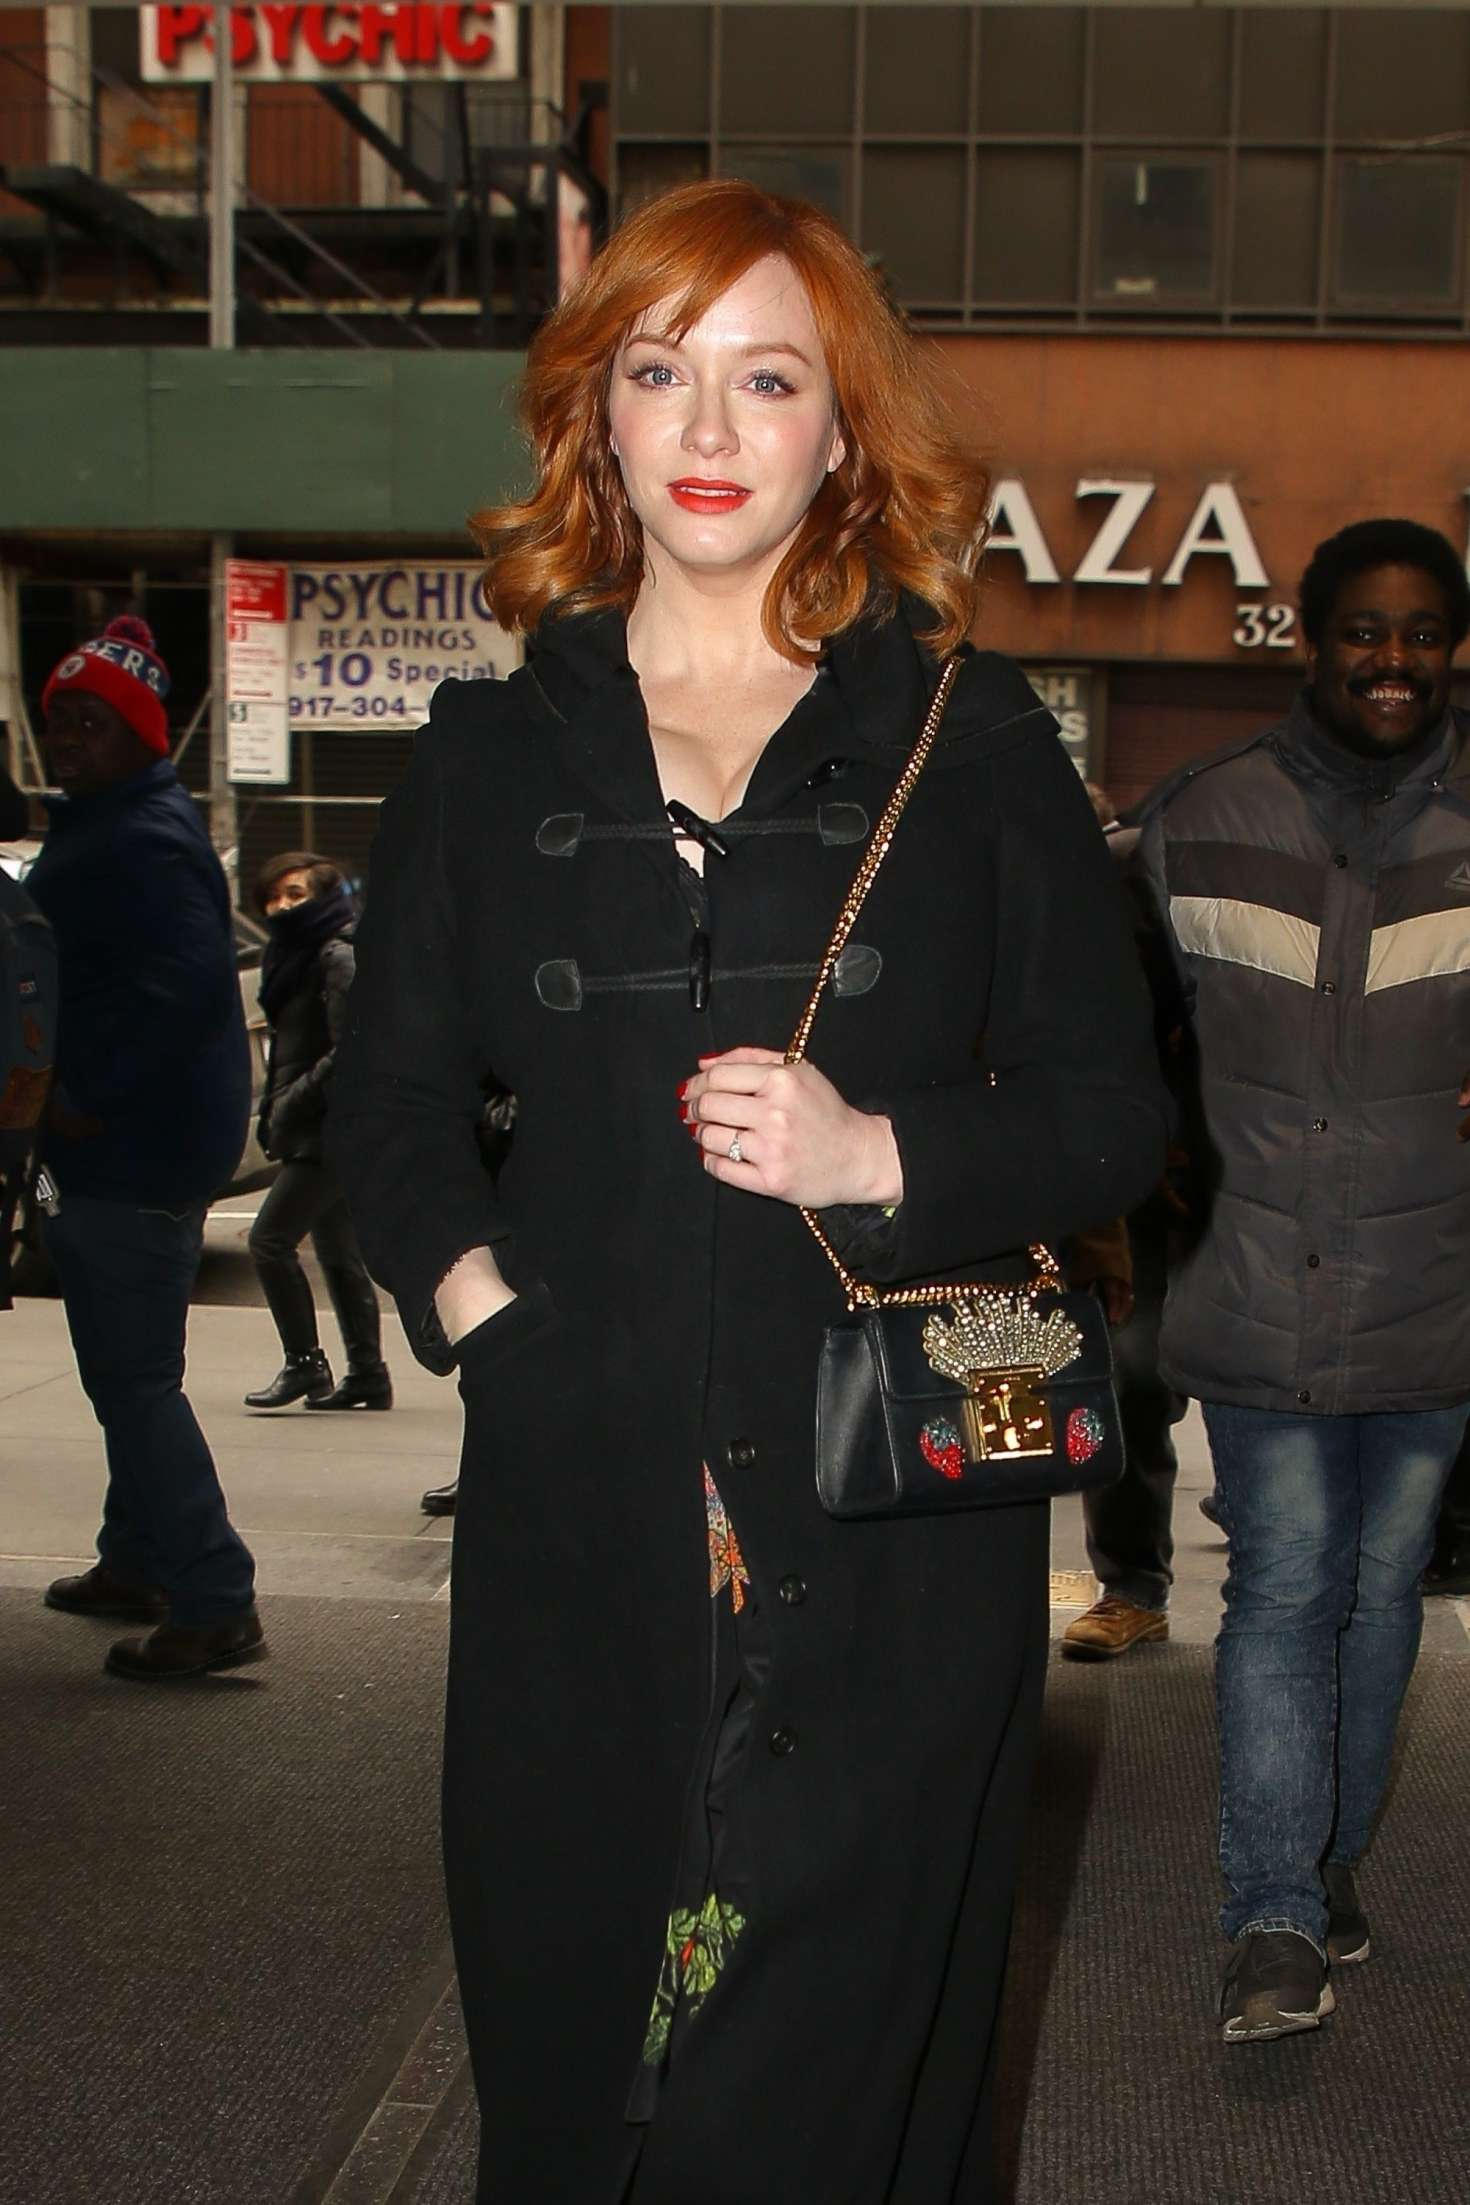 Christina Hendricks - Arriving at the NBC Studios in NYC